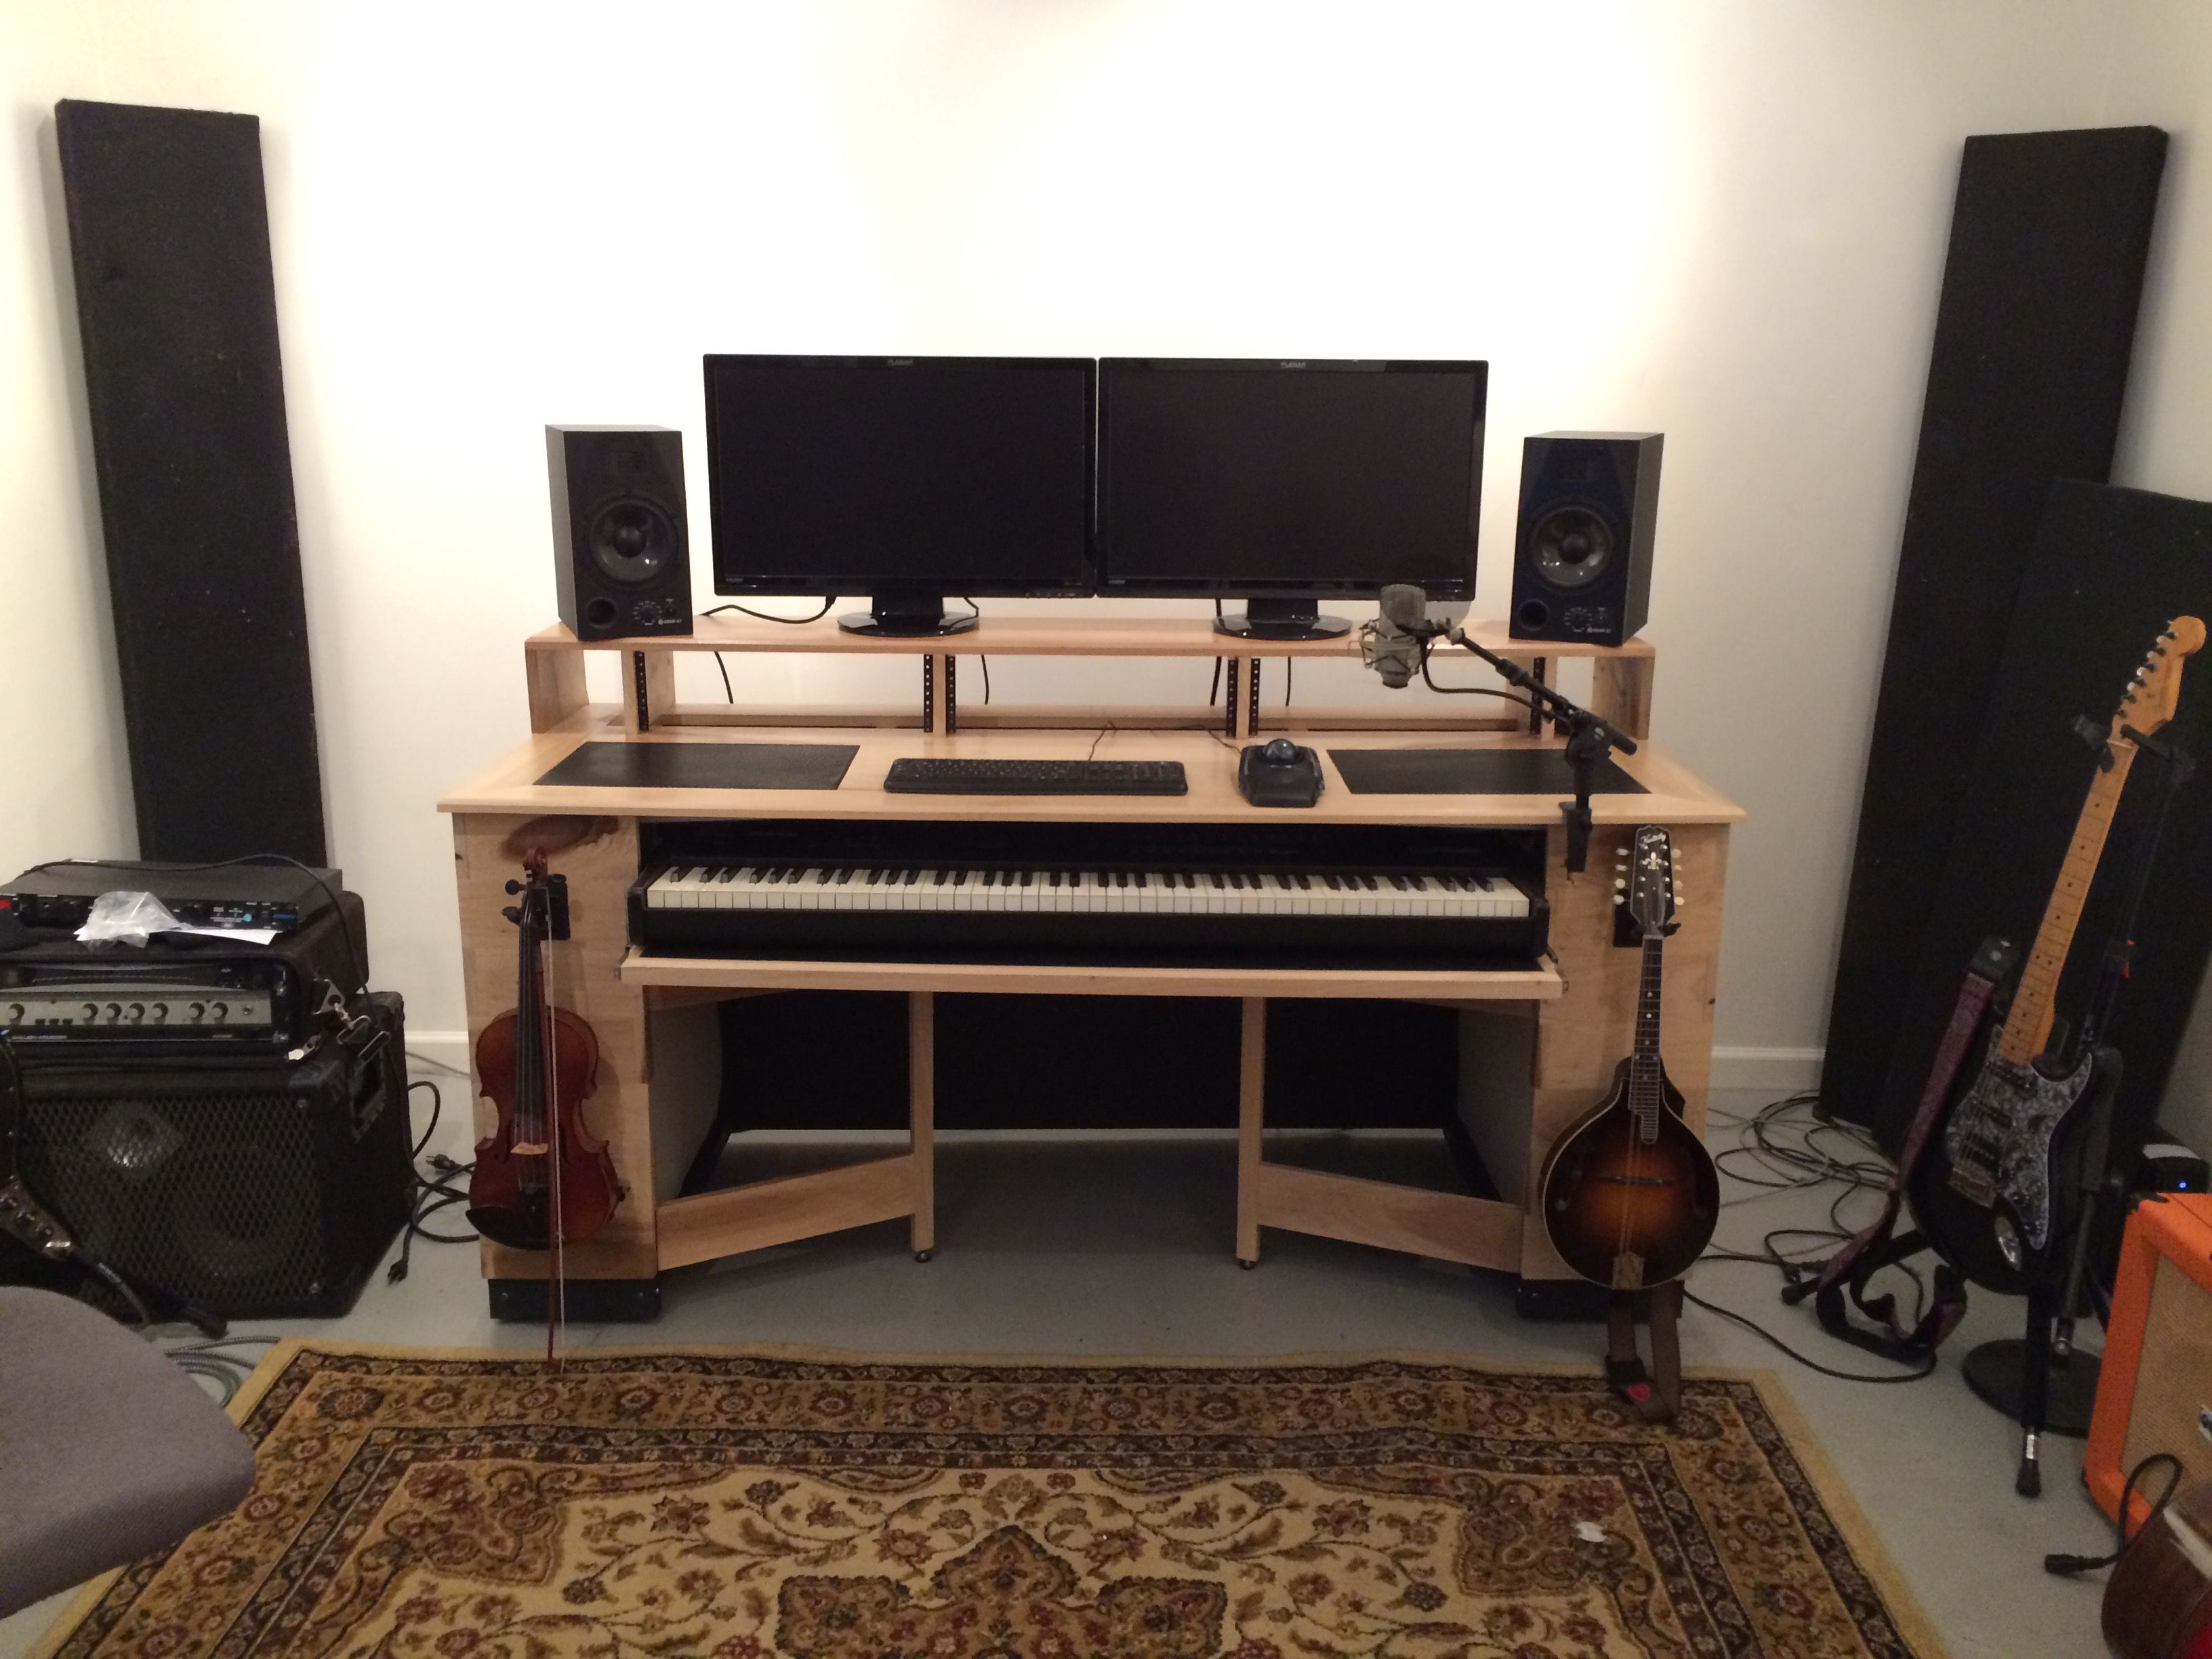 I built this DIY audio mixing desk, and drank lots of beer